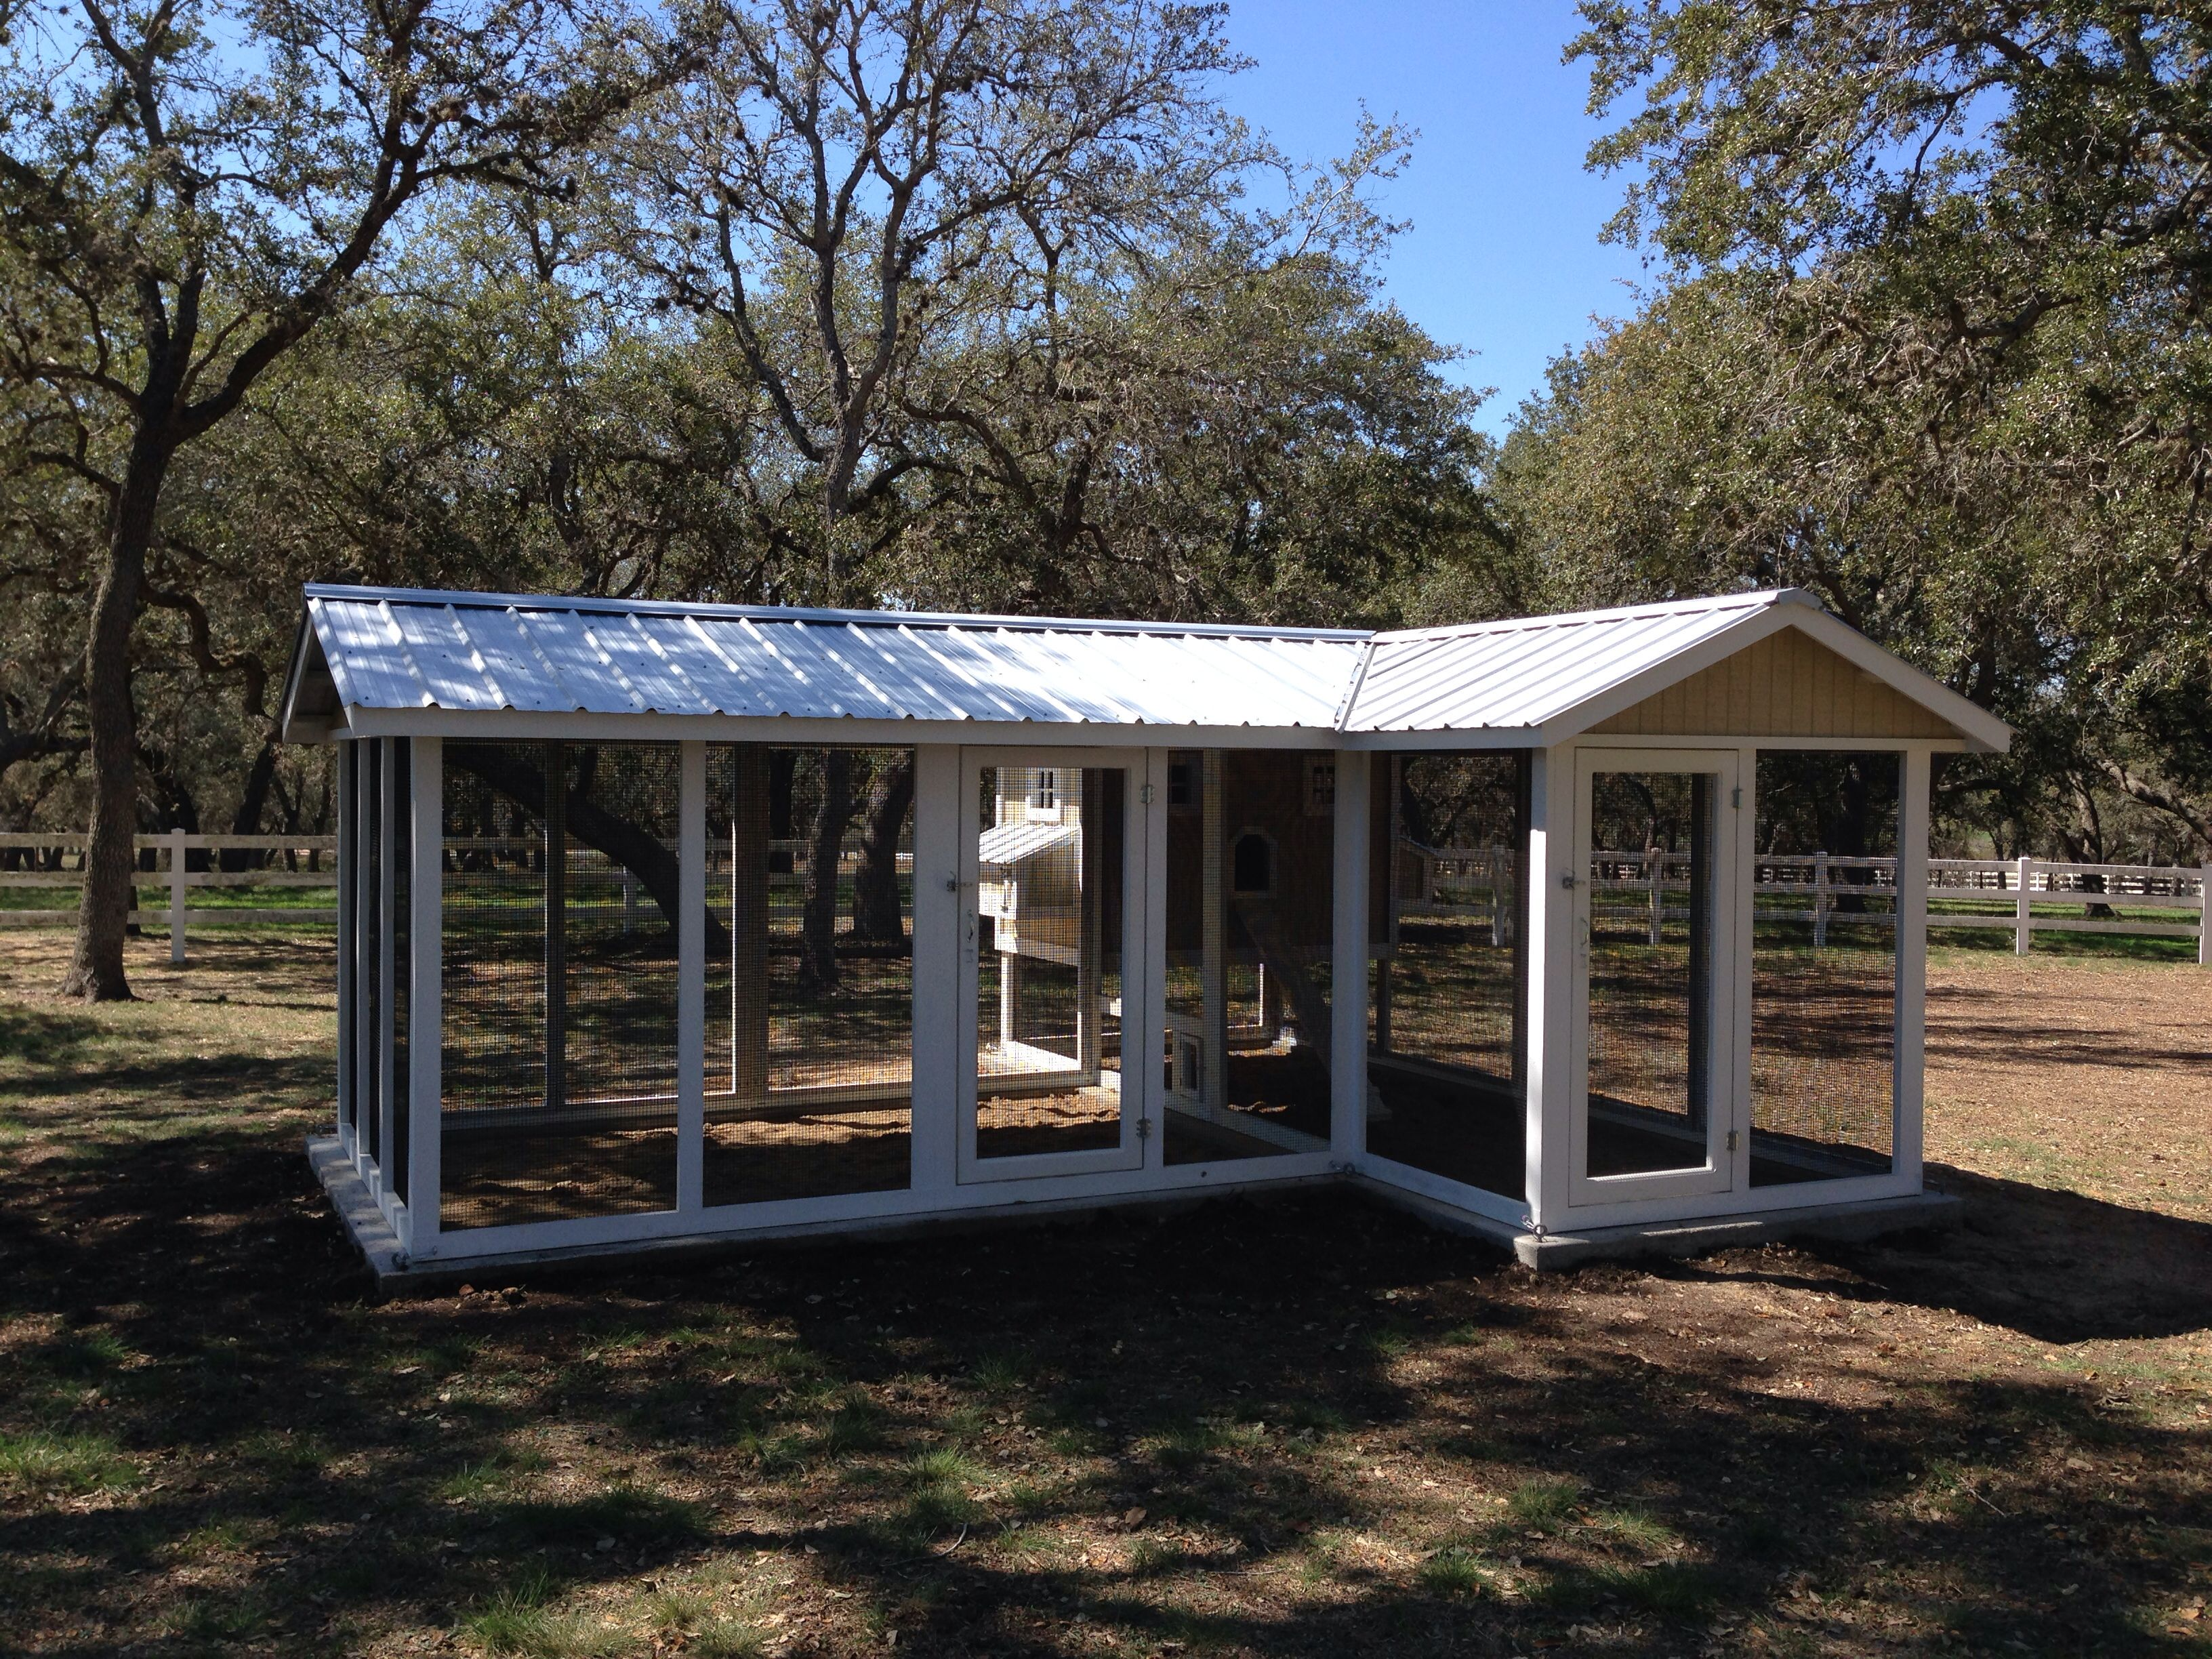 Awesome Way To Add A Run Extension To Your Existing Chicken Coop